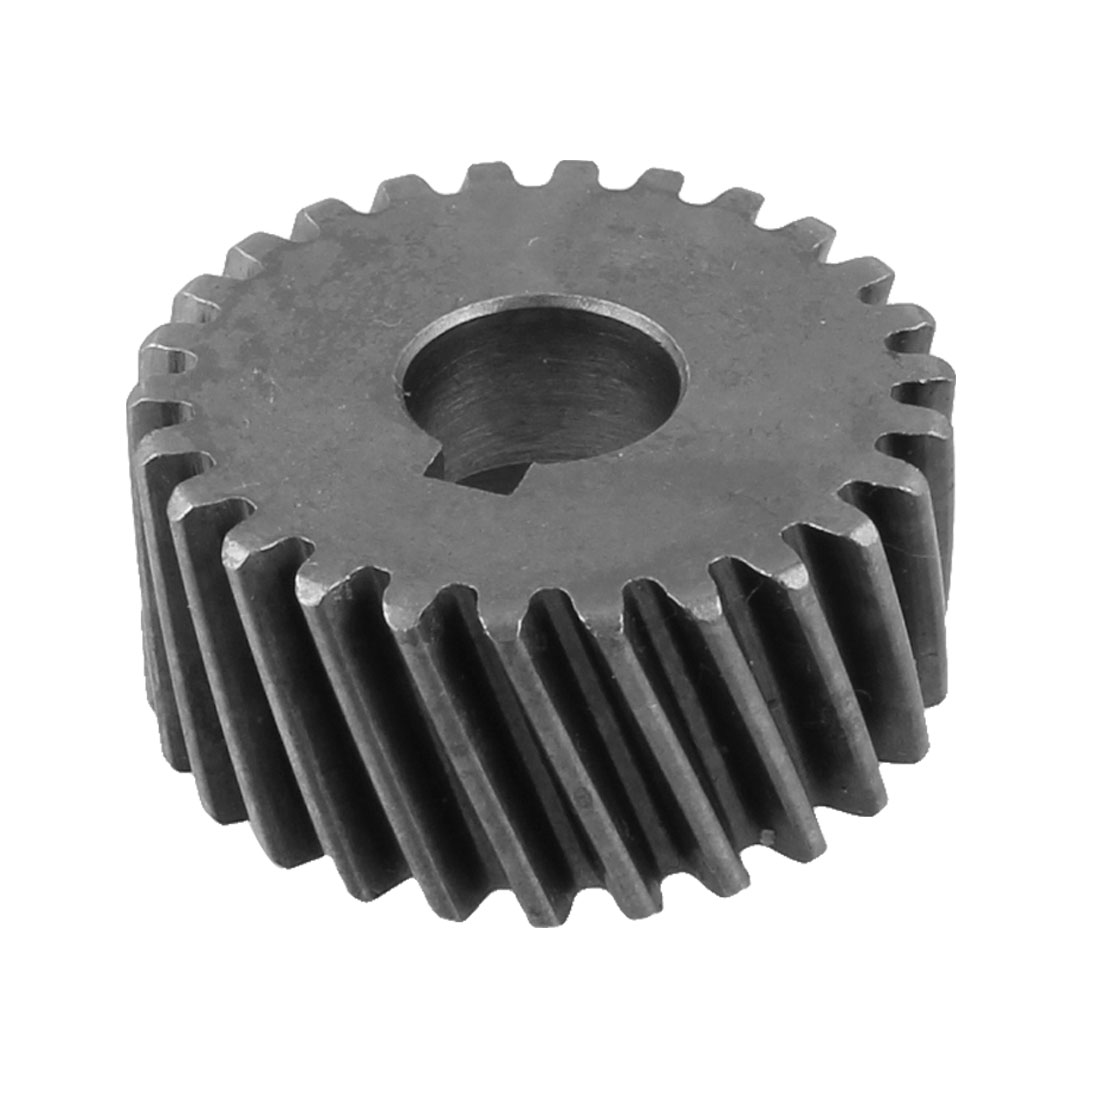 Dark Gray Metal Spiral Bevel Gear for 26mm Electric Hammer